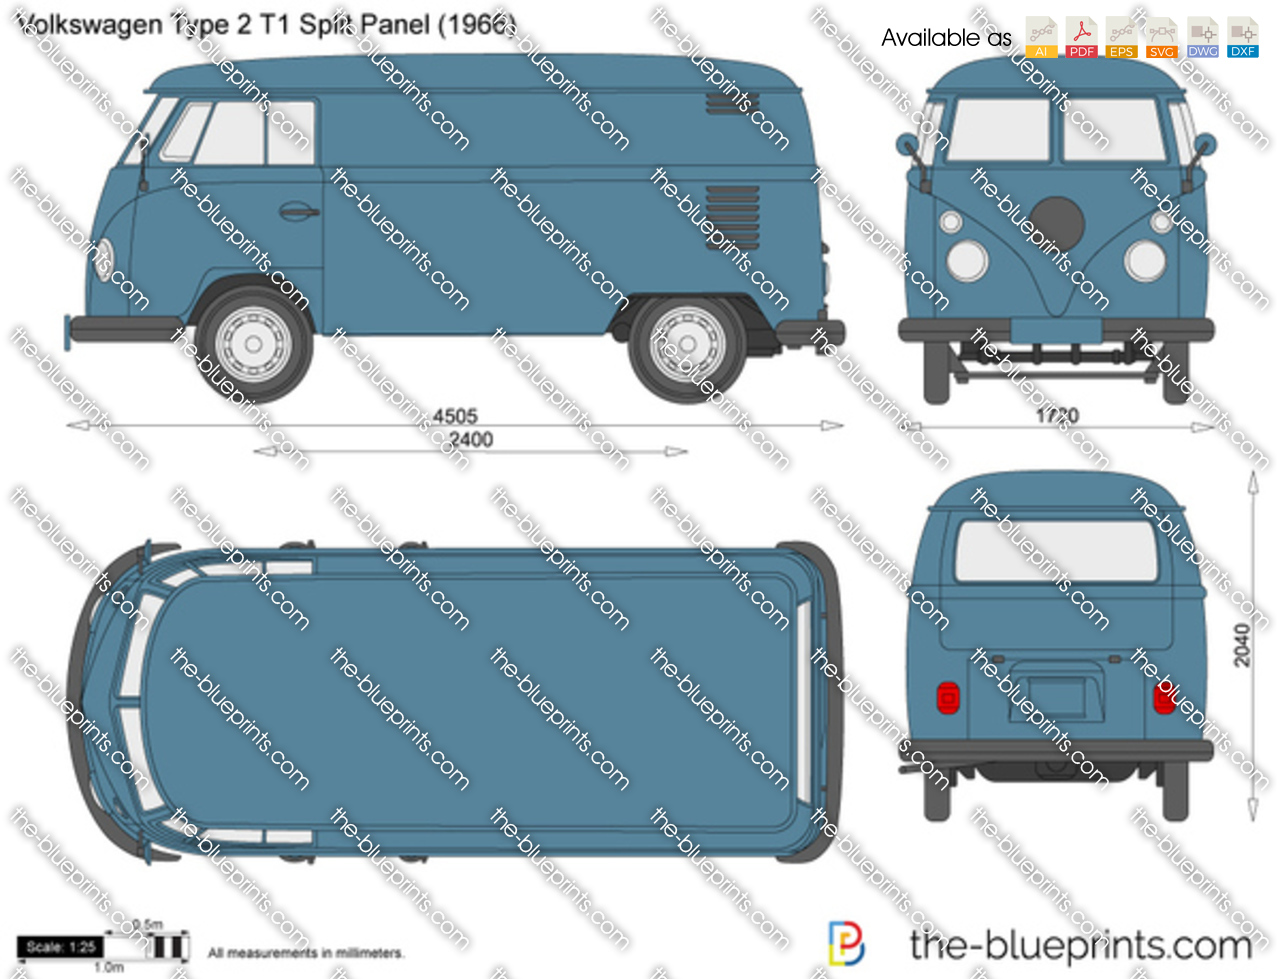 Volkswagen Type 2 T1 Split Panel 1953